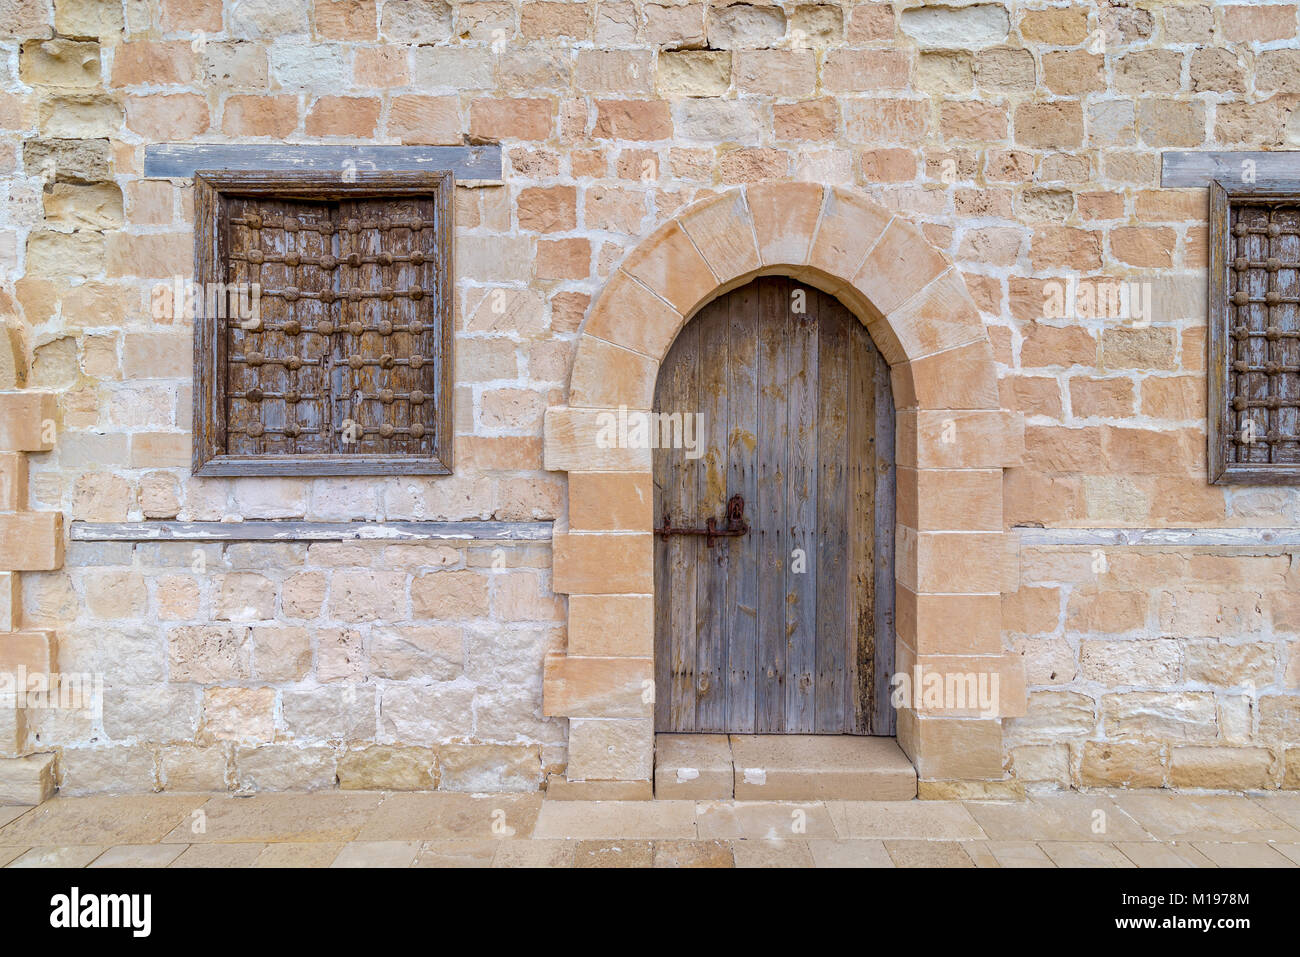 Door and two windows of one of the rooms surrounding the main yard of the citadel of Alexandria, Egypt - Stock Image